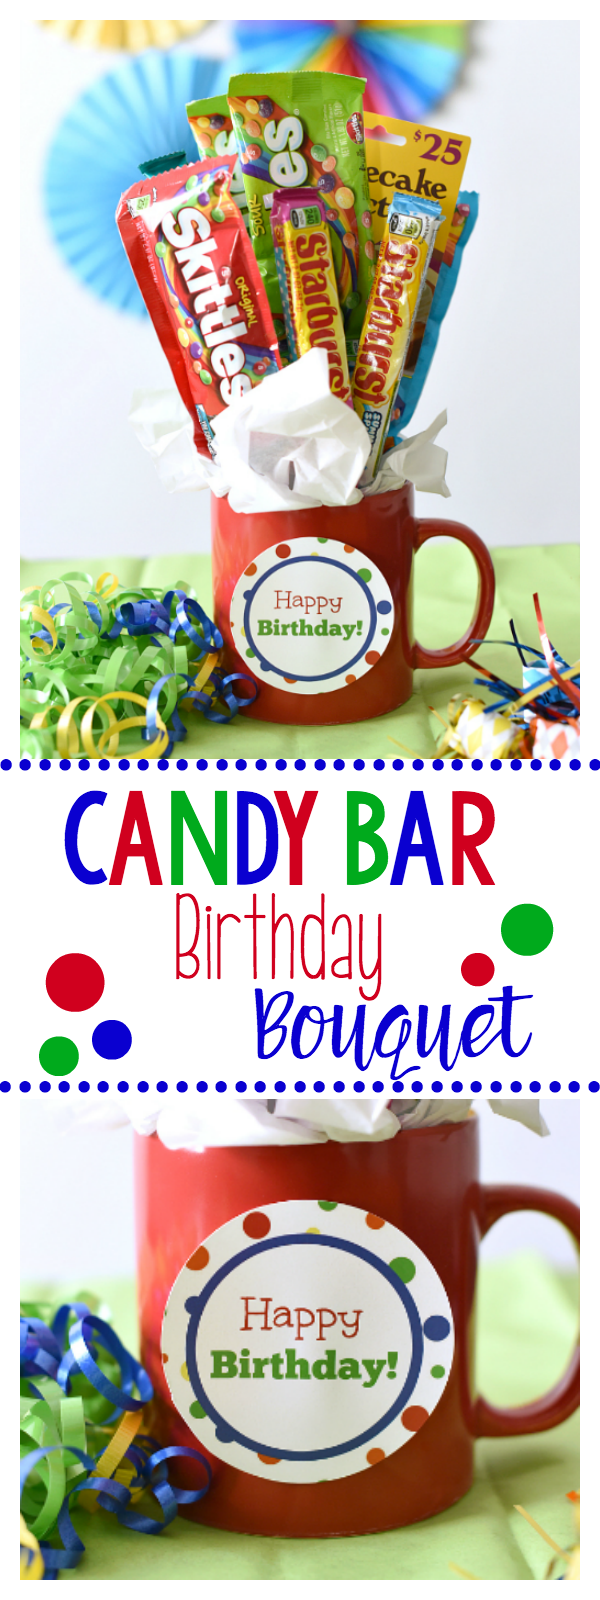 Candy Bar Bouquet-Great Birthday Gift Idea for Friends